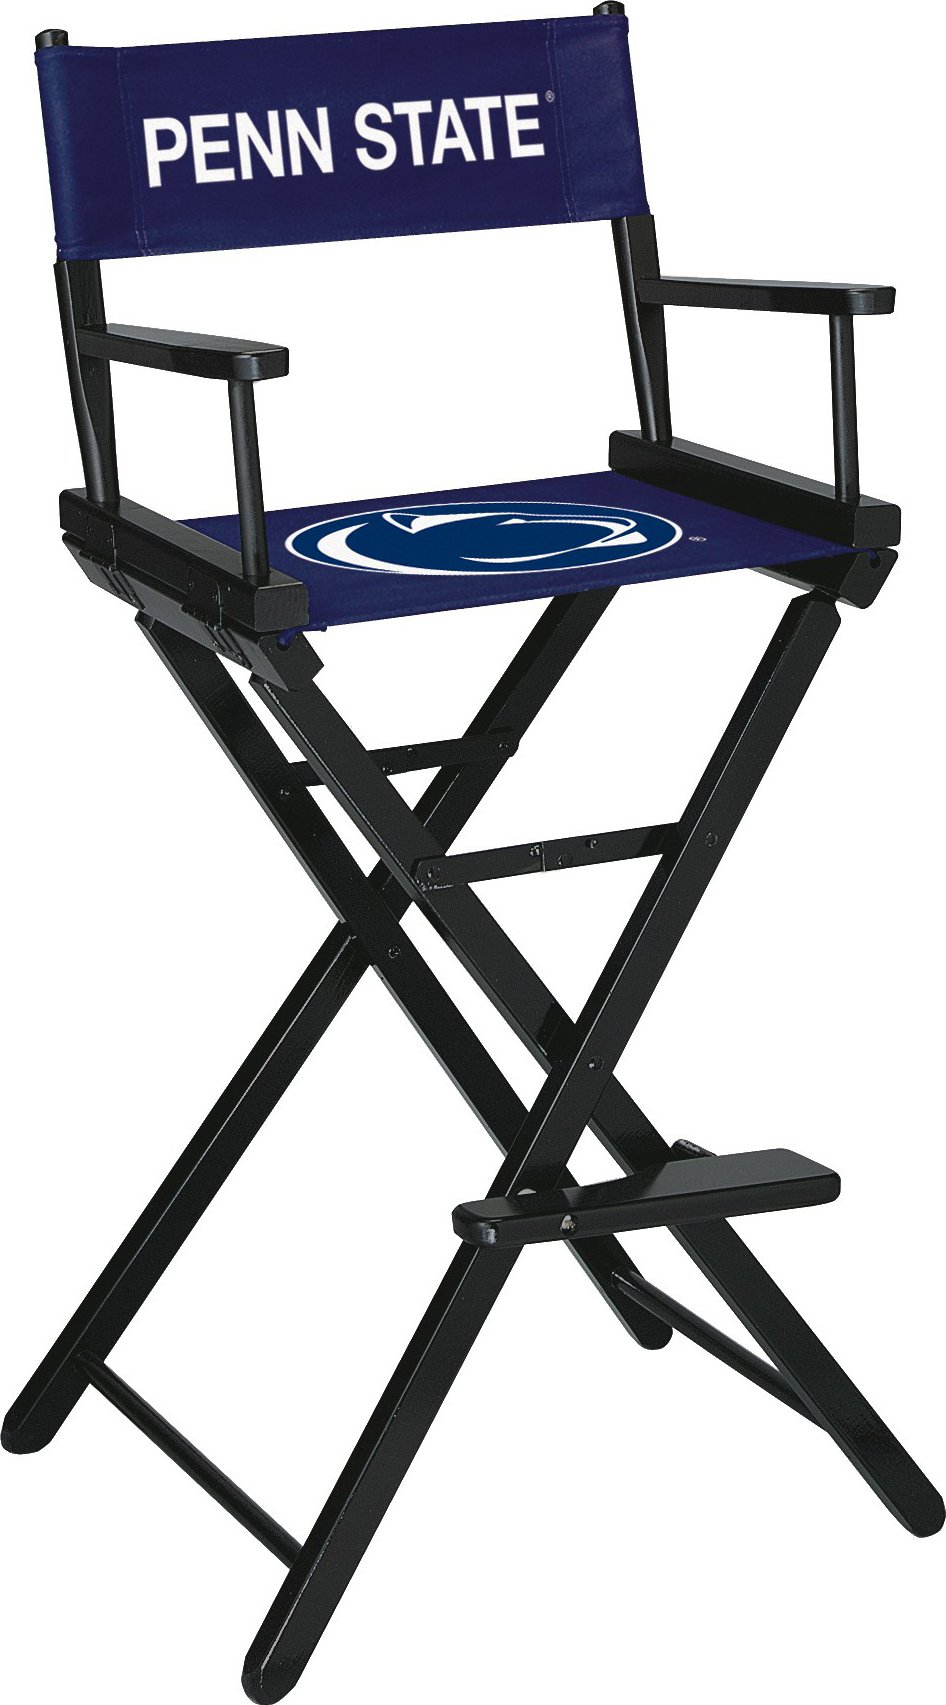 Imperial Officially Licensed NCAA Merchandise: Directors Chair (Tall, Bar Height), Penn State Nittany Lions